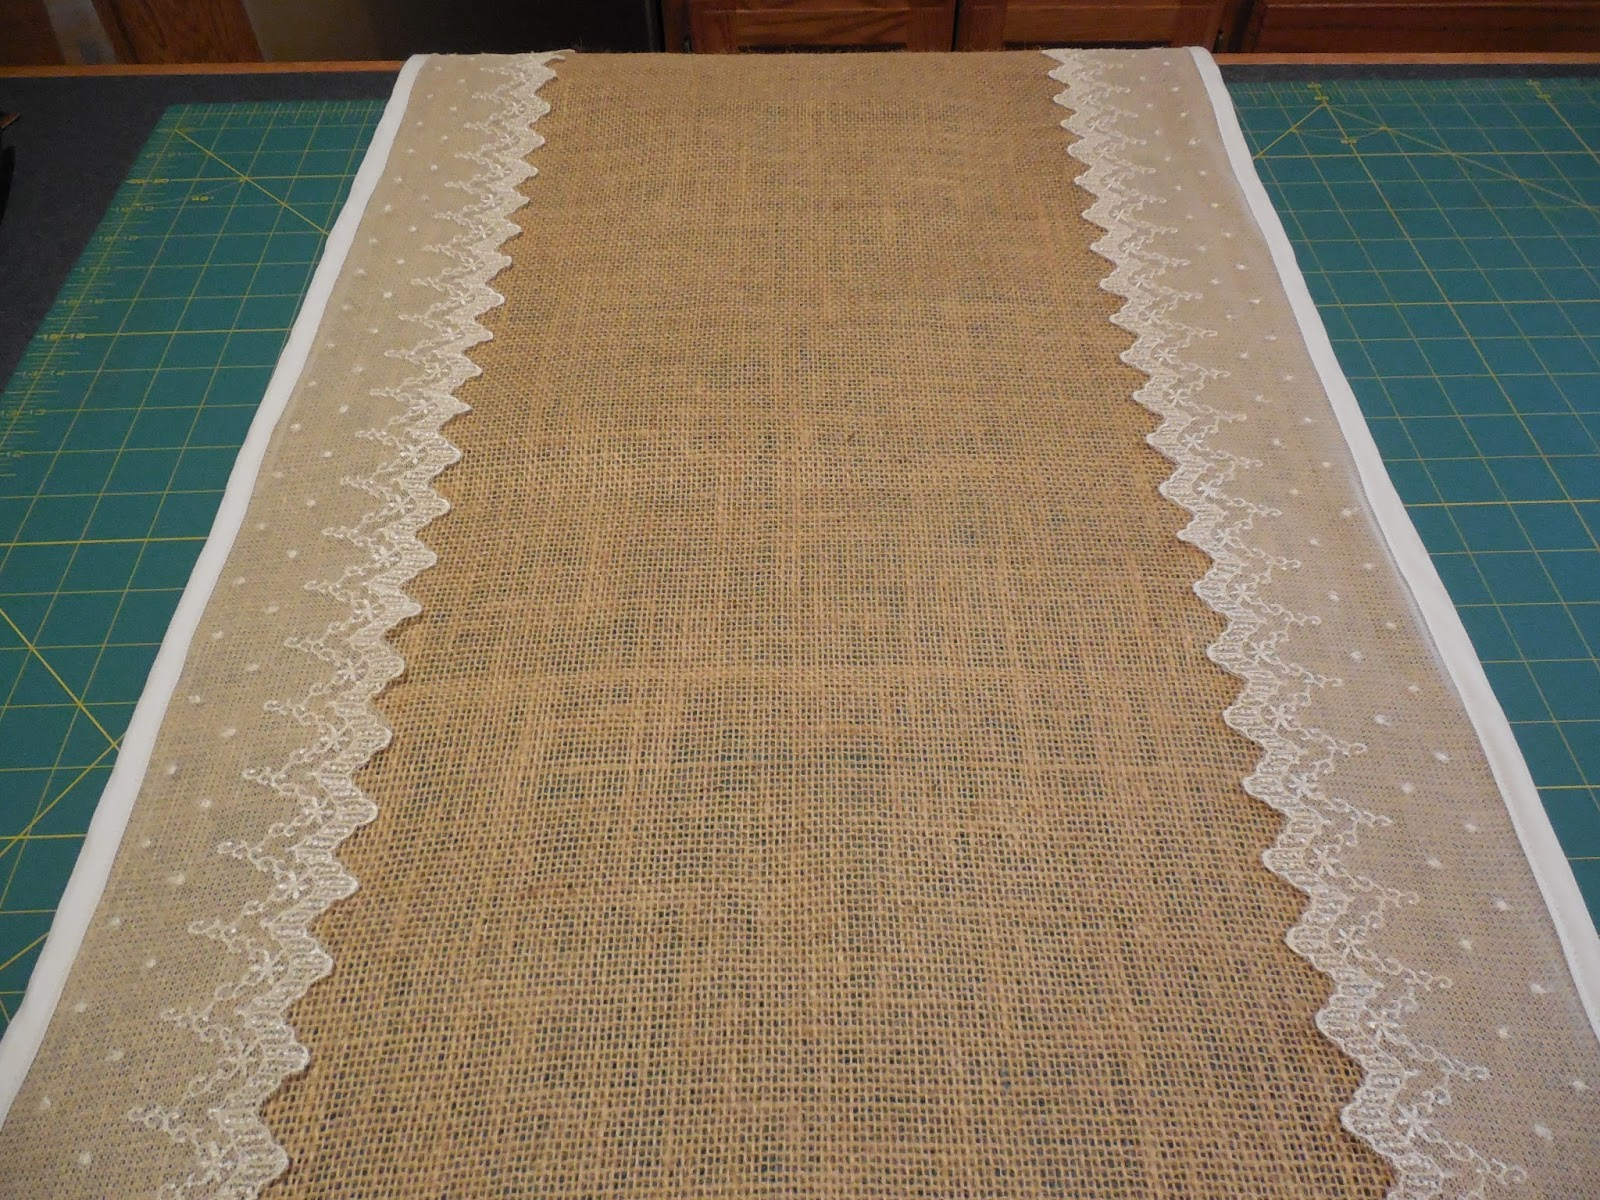 Fabric Obsession Burlap Amp Lace Table Runner Tutorial